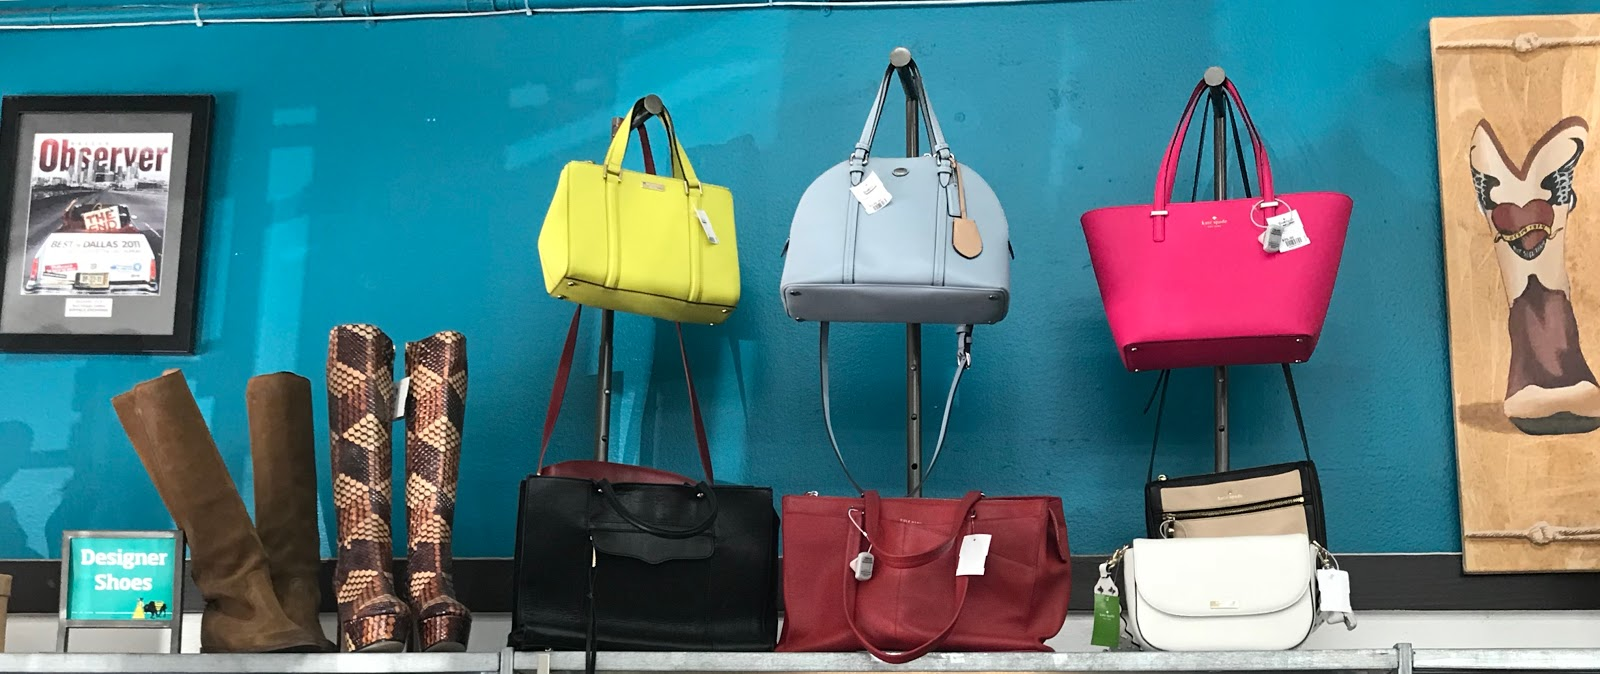 Image: Boots, handbags hanging at the thrift store